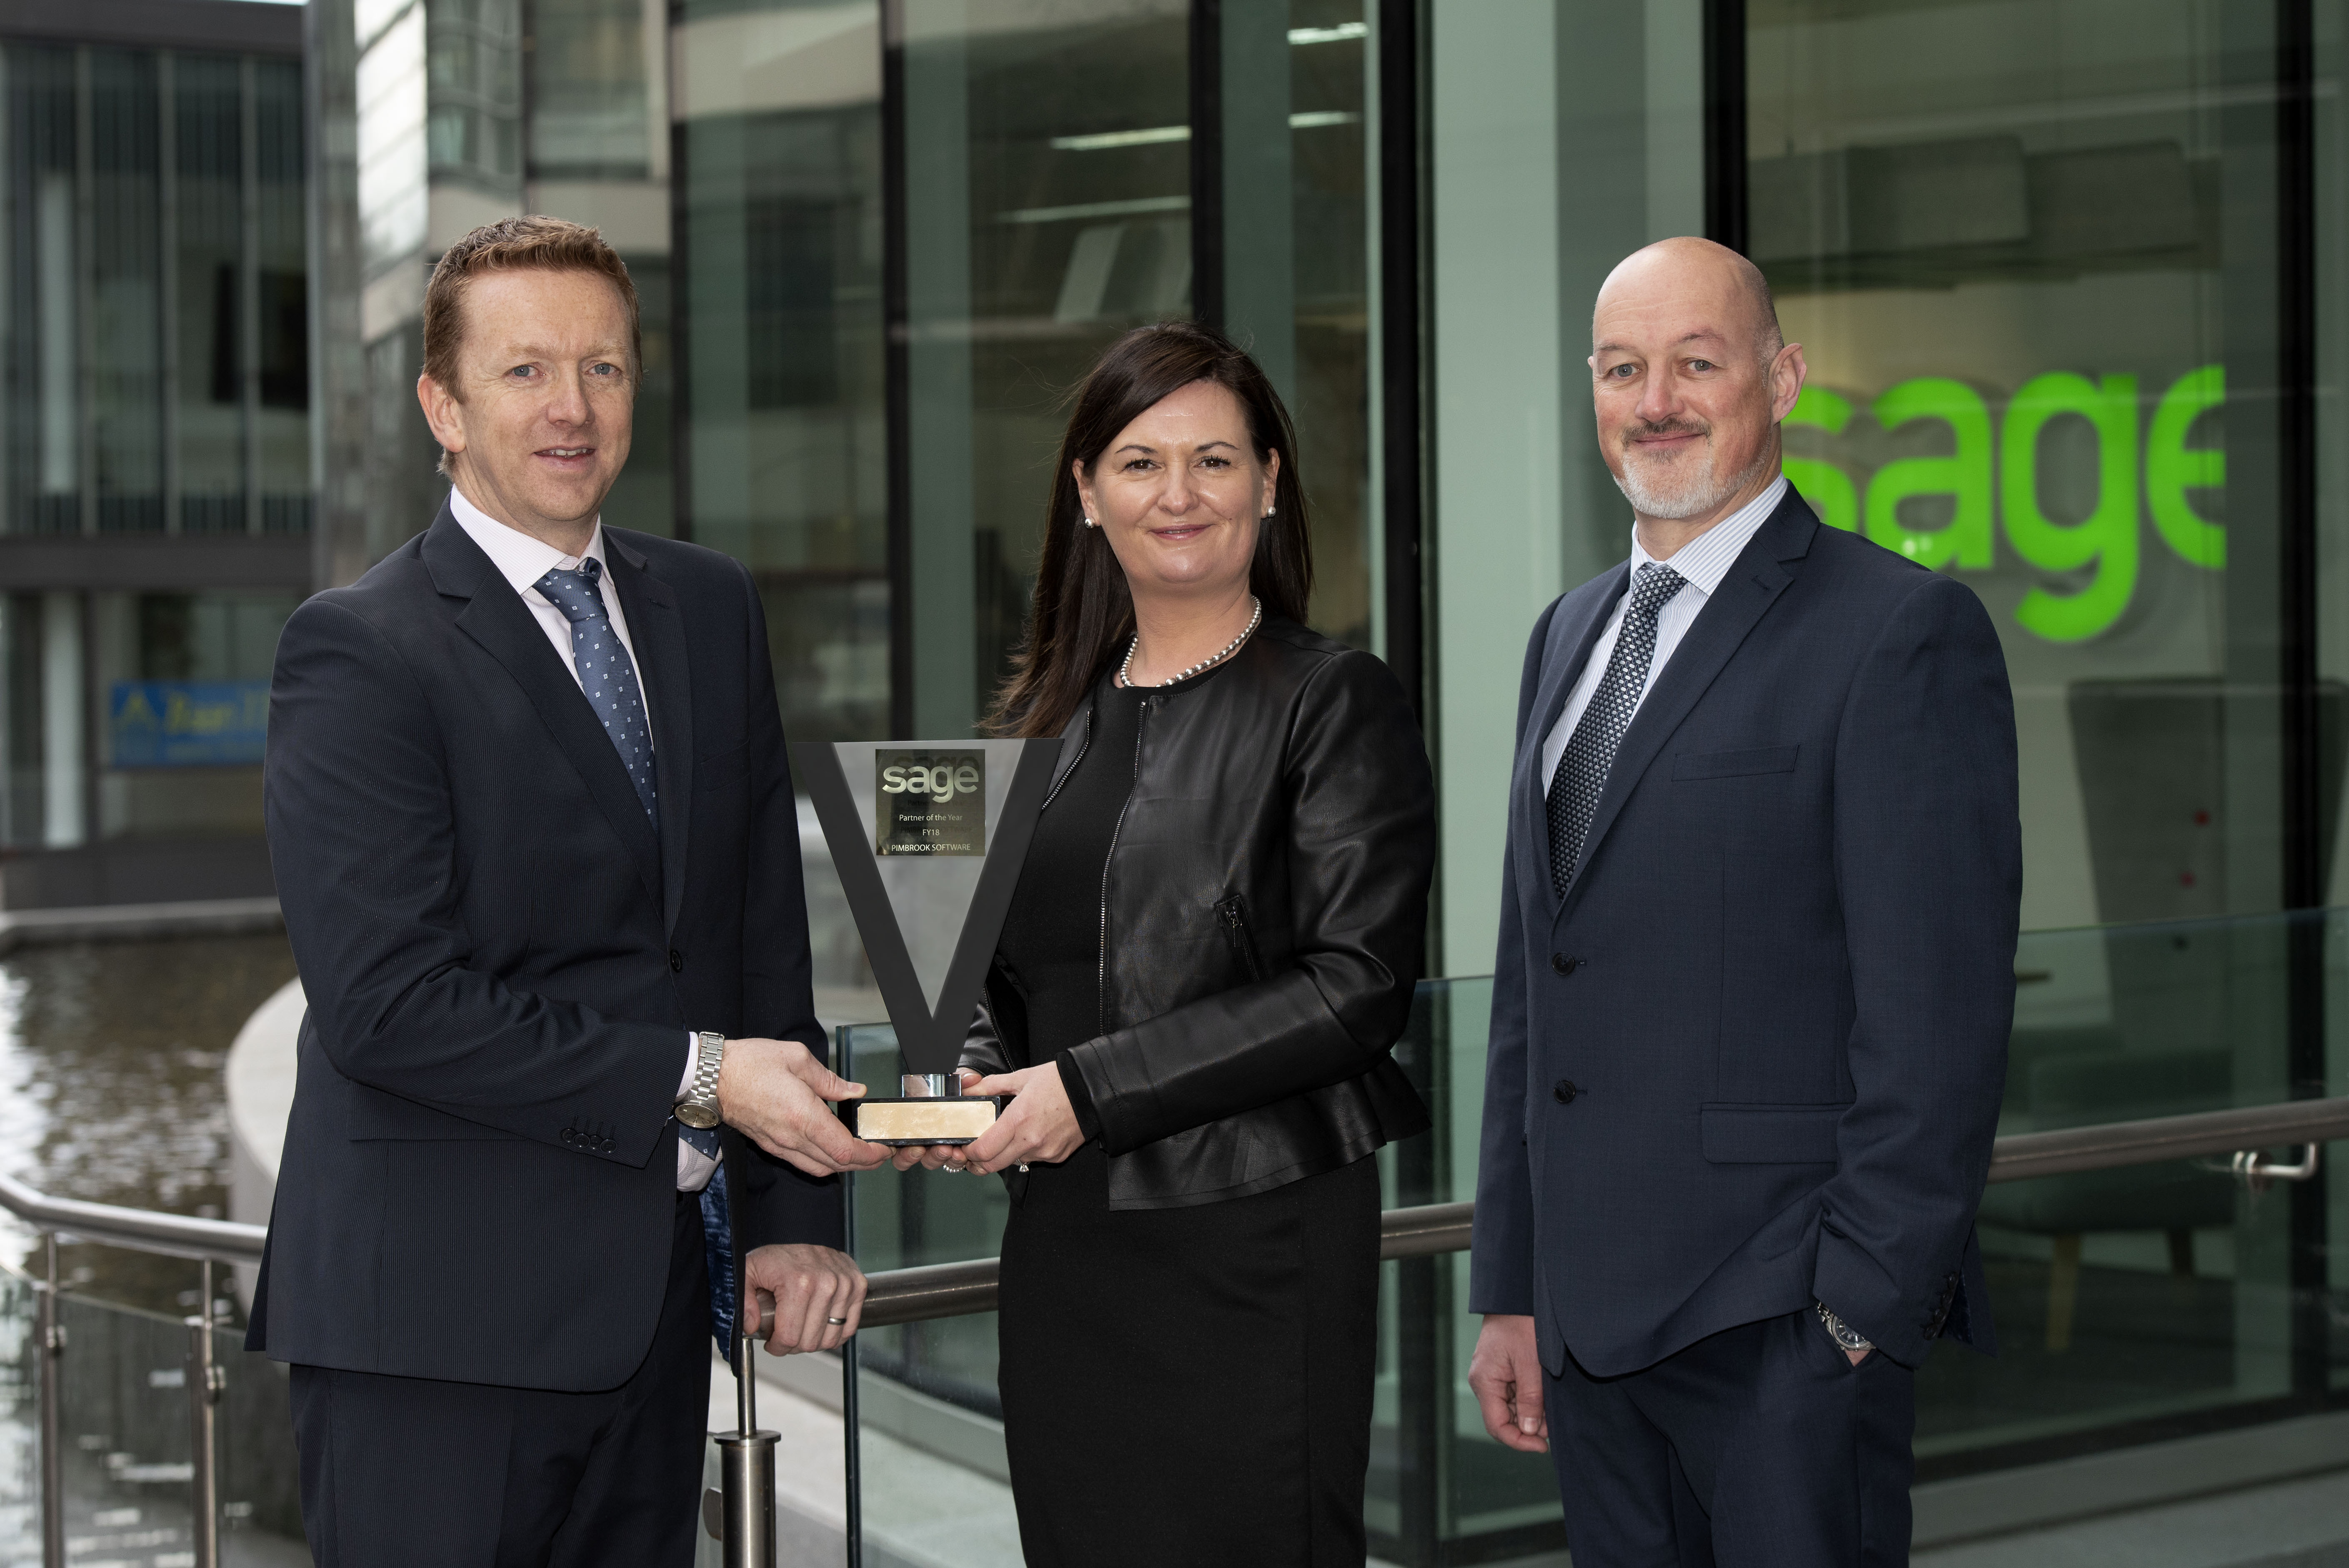 Pimbrook Selected as Sage Partner Of The Year 2018